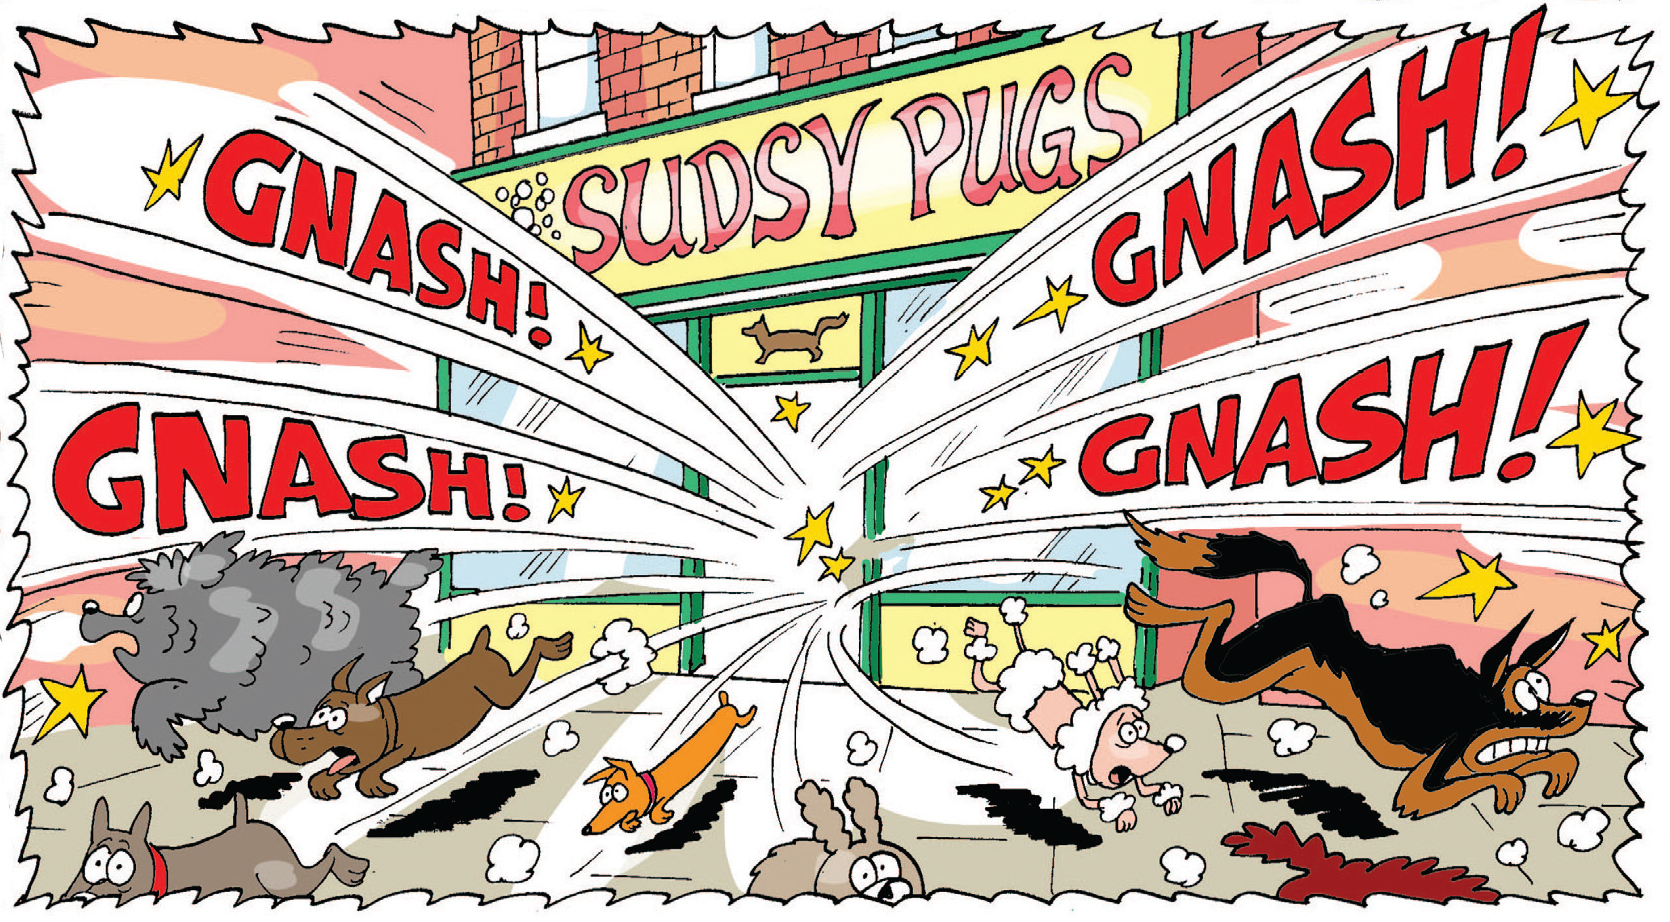 Gnasher trashes the dog salon